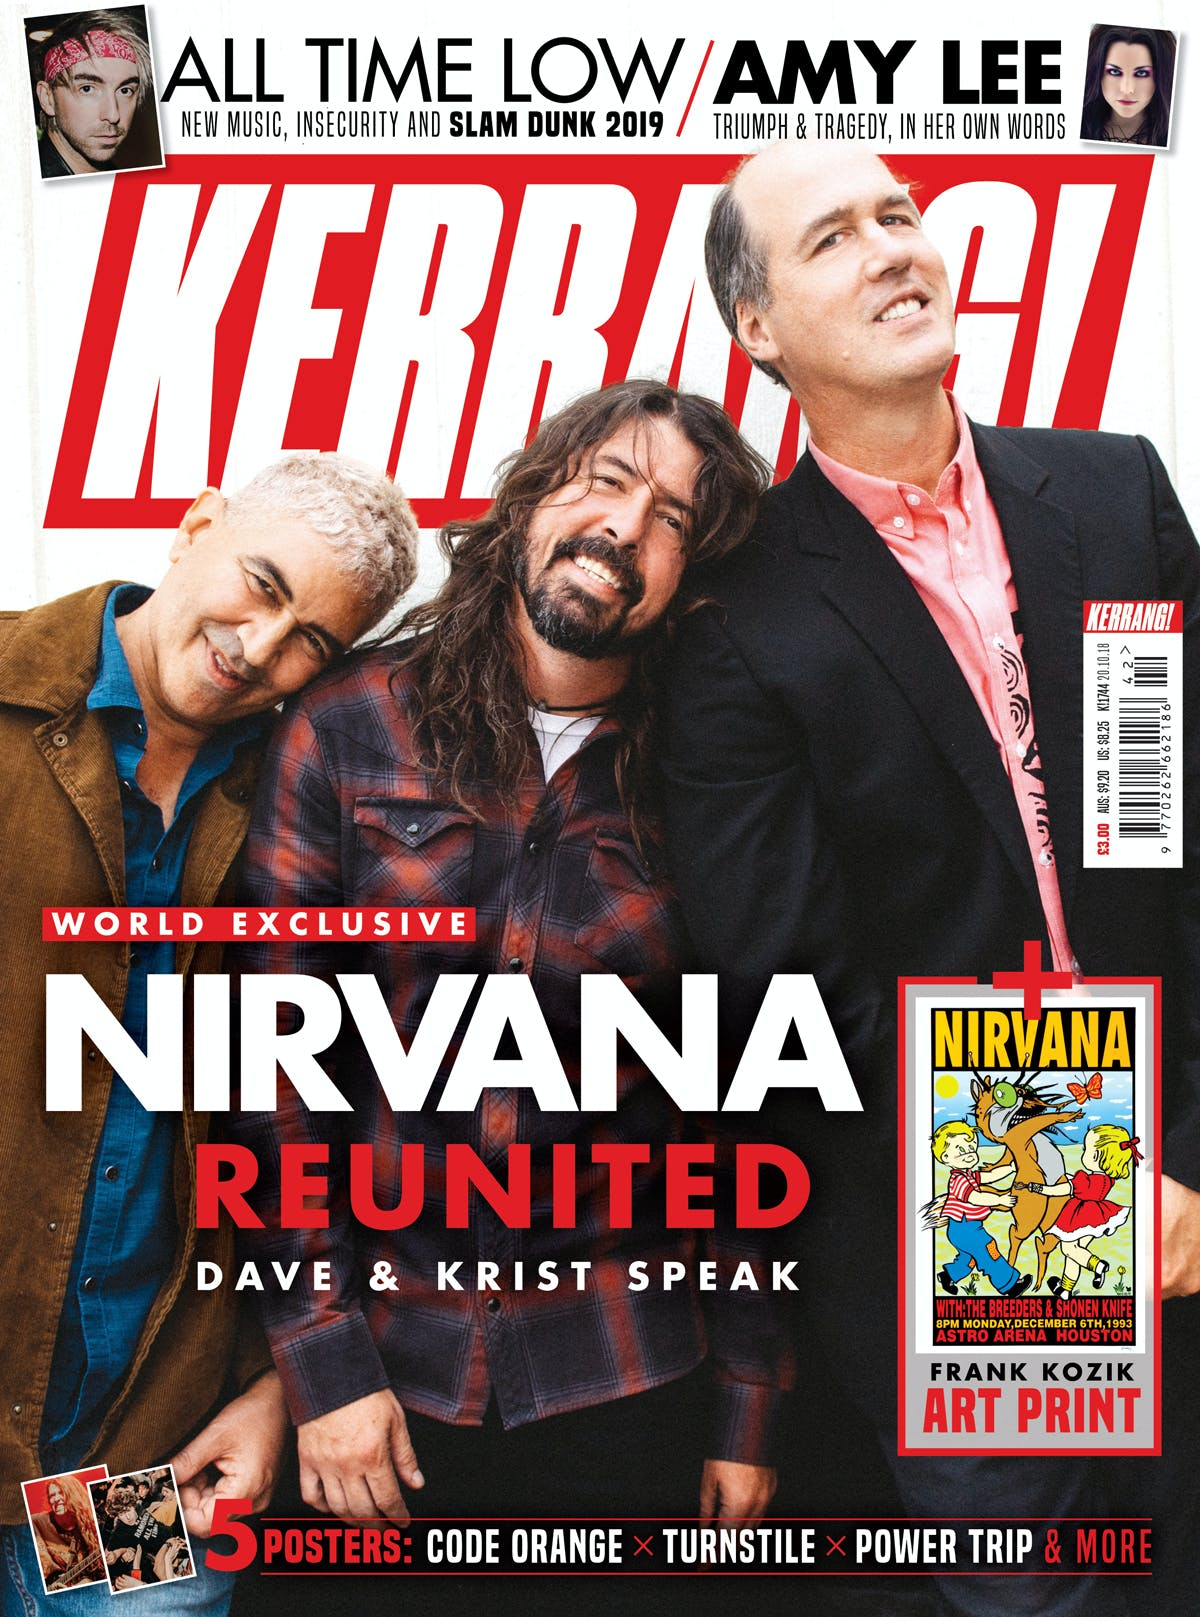 K1744 Nirvana Cover Embargoed